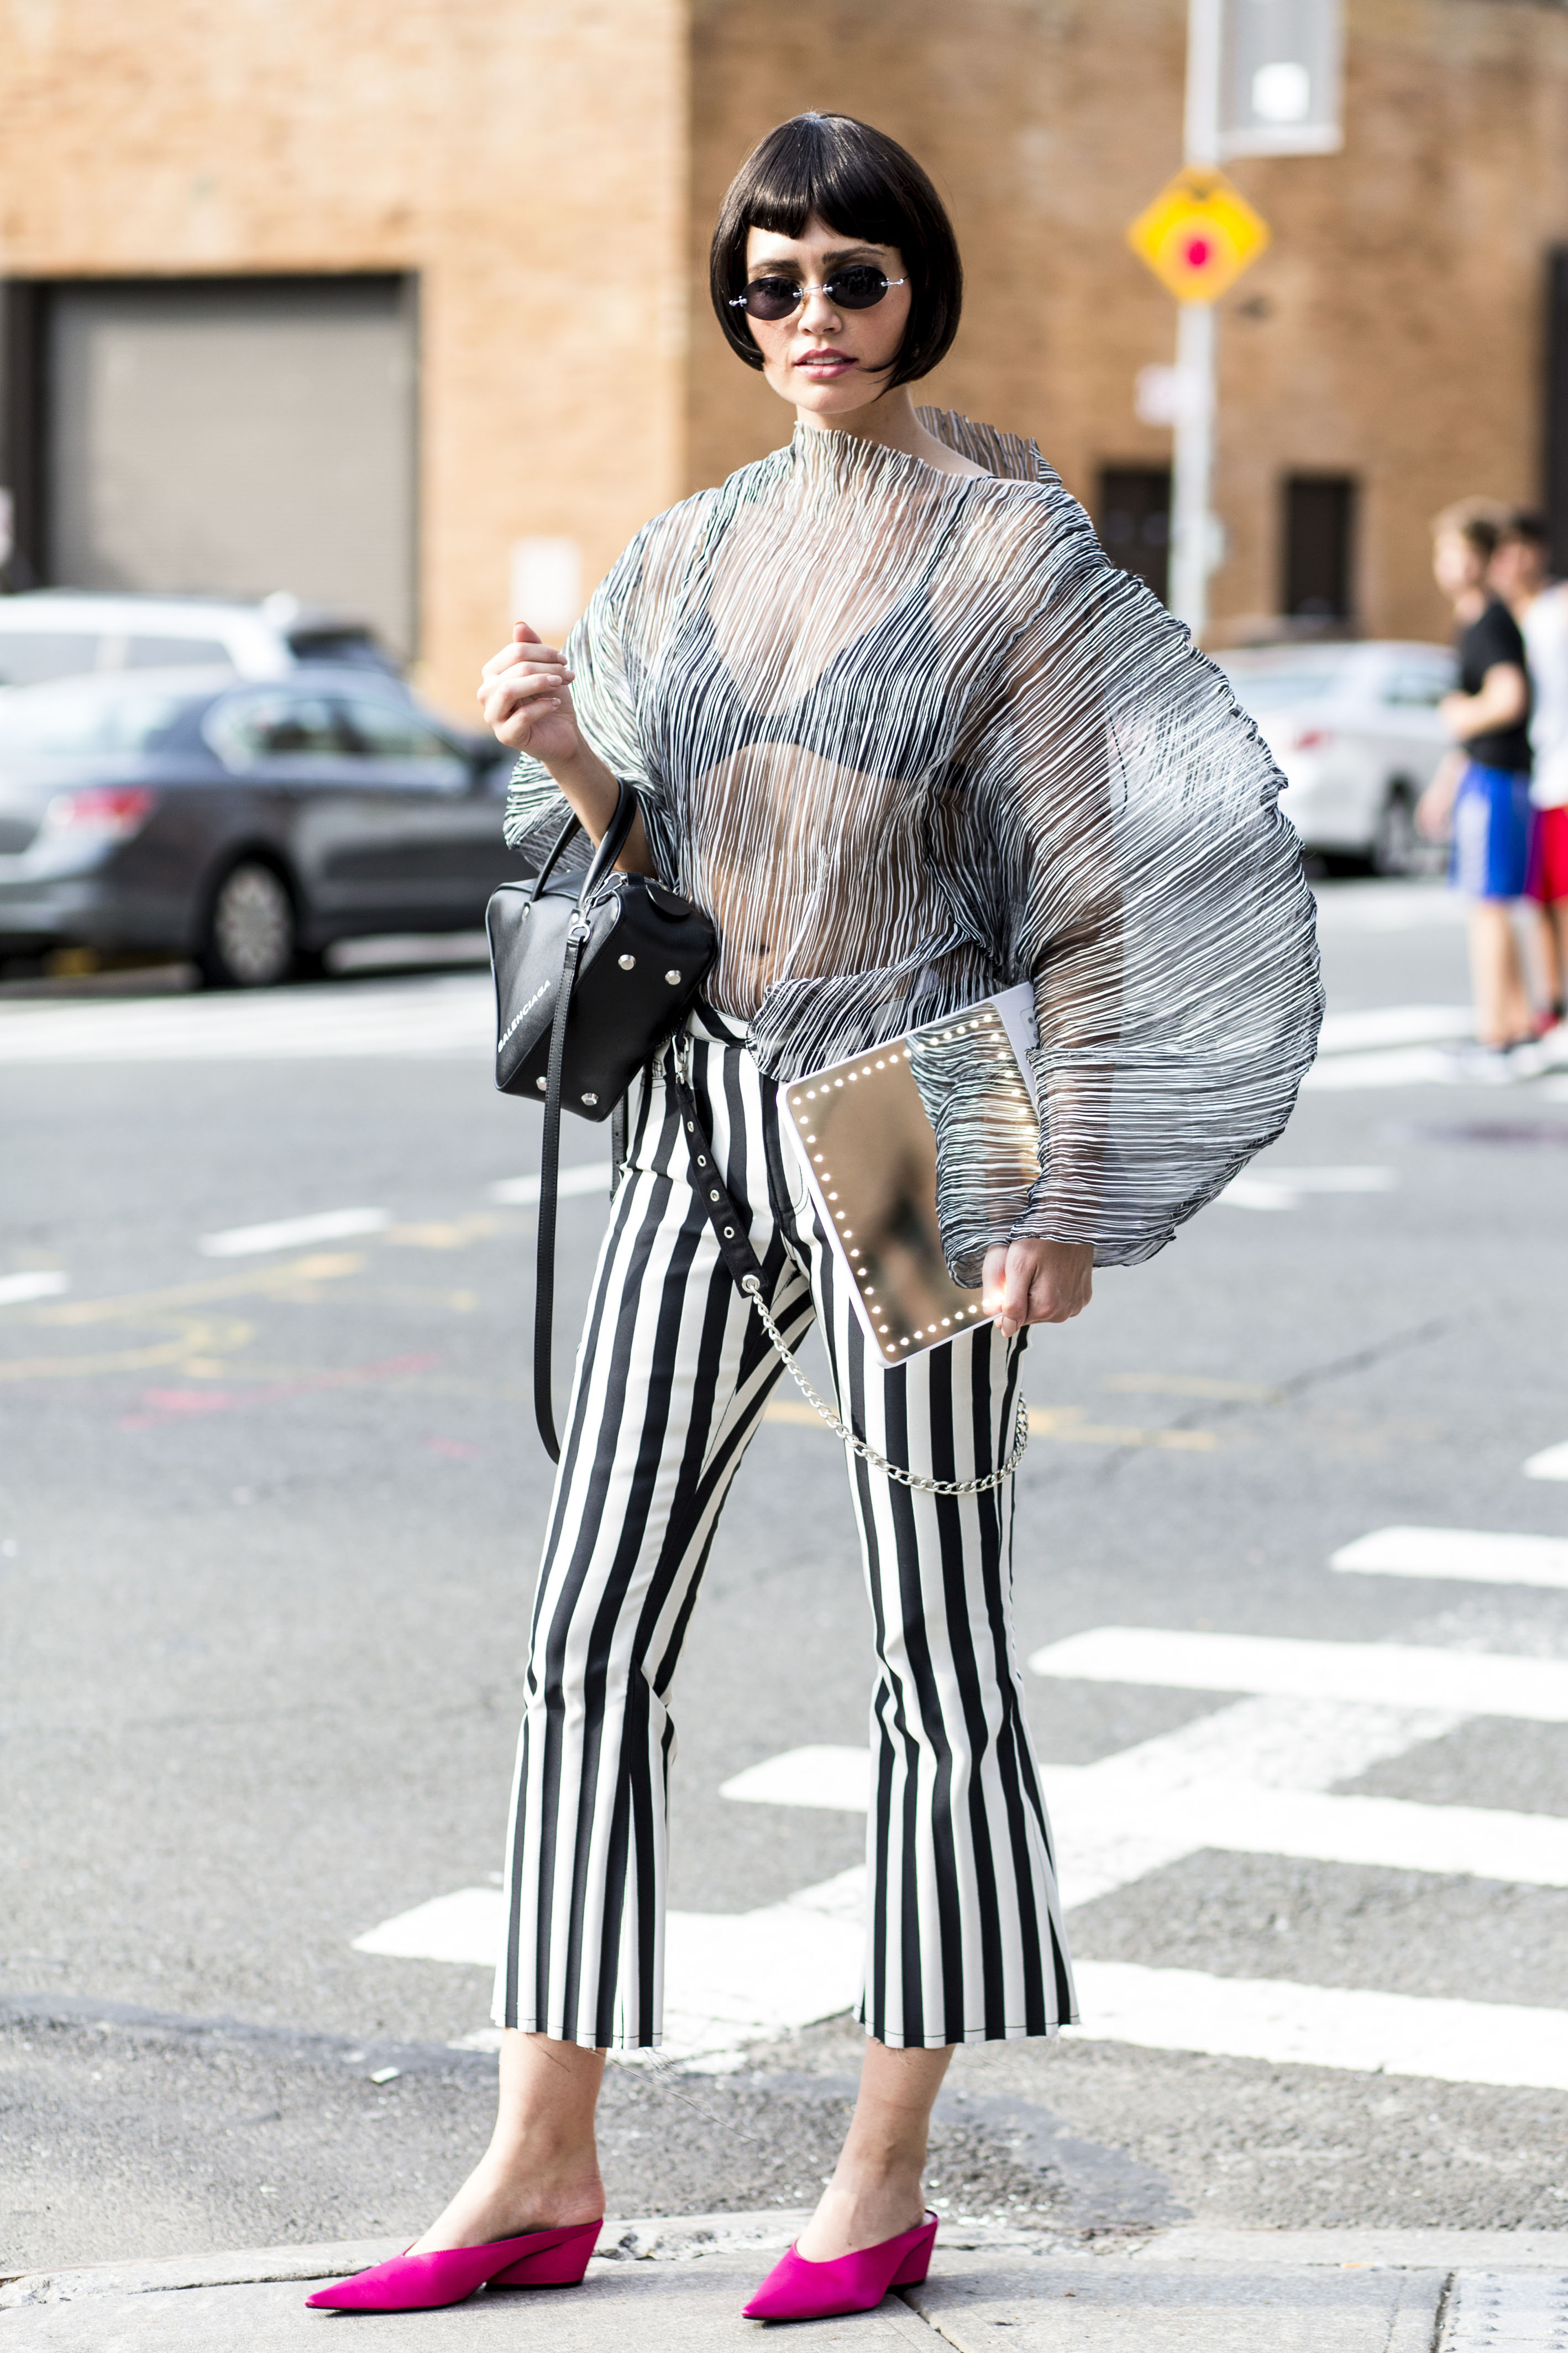 New York Fashion Week Street Style - September 12 2017 - Spring Summer 2018 - MintModa | Trend ...